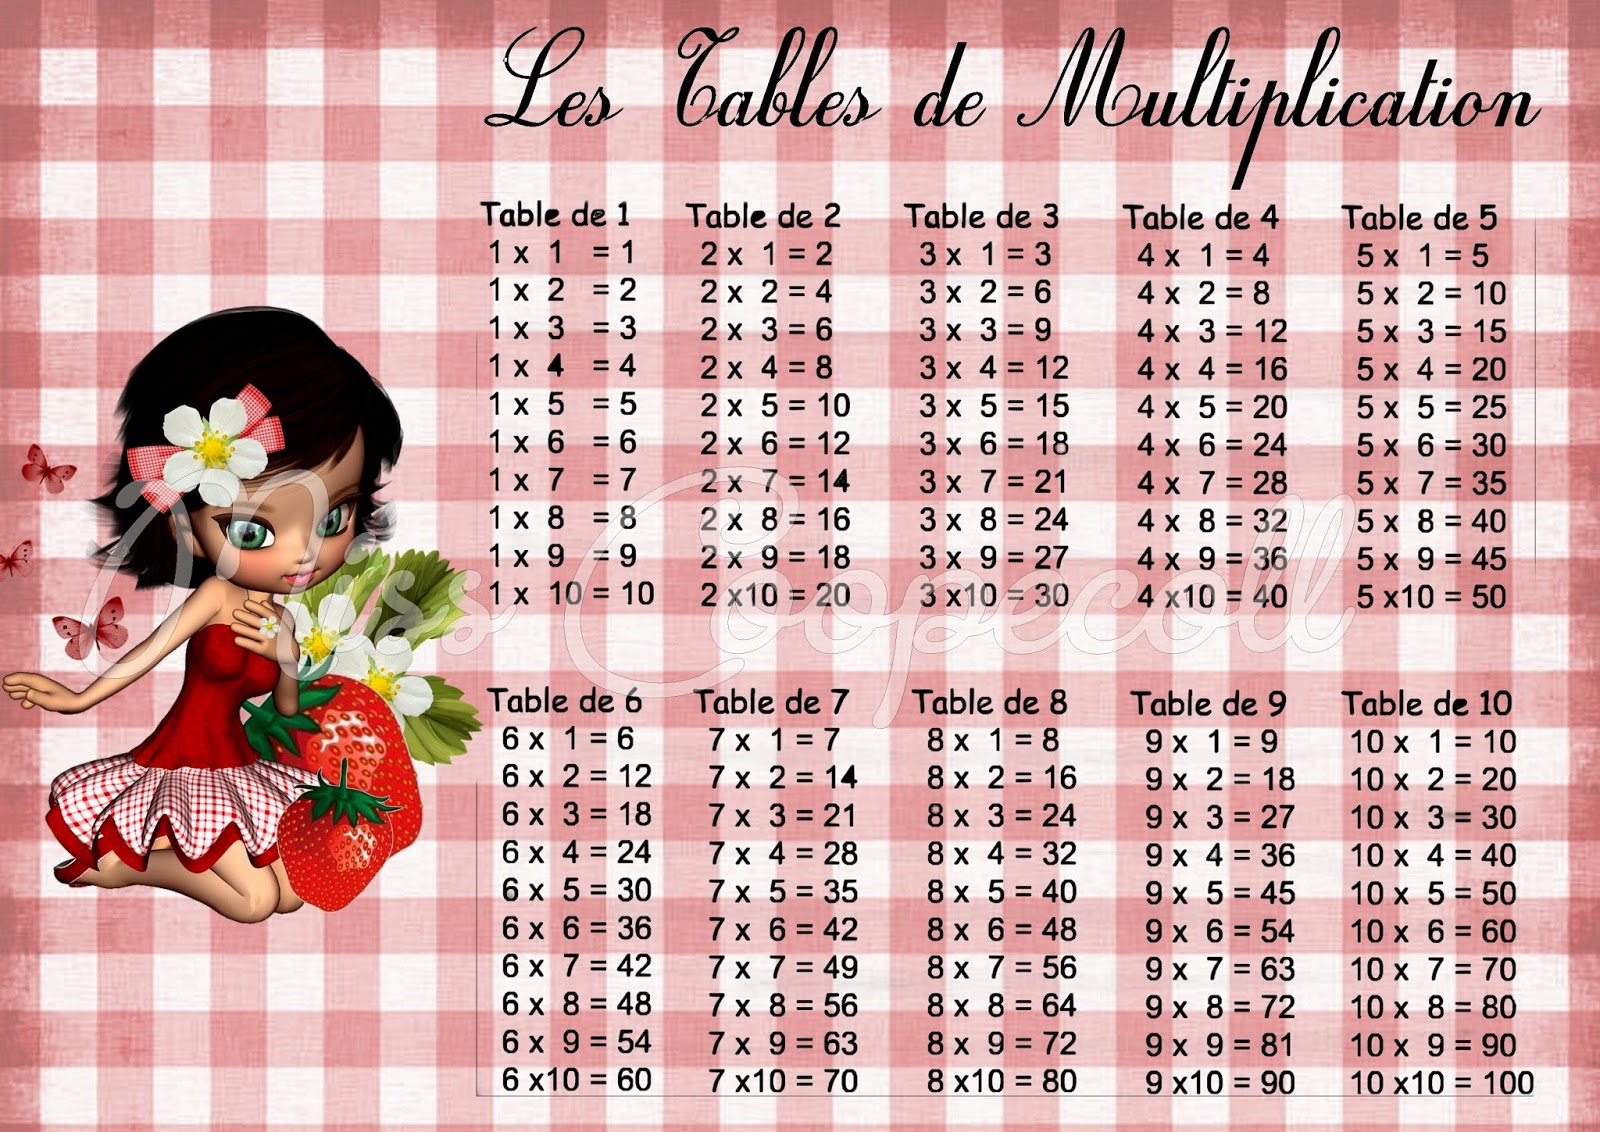 Table de multiplication a imprimer format a4 - Les table de multiplication de 1 a 10 ...